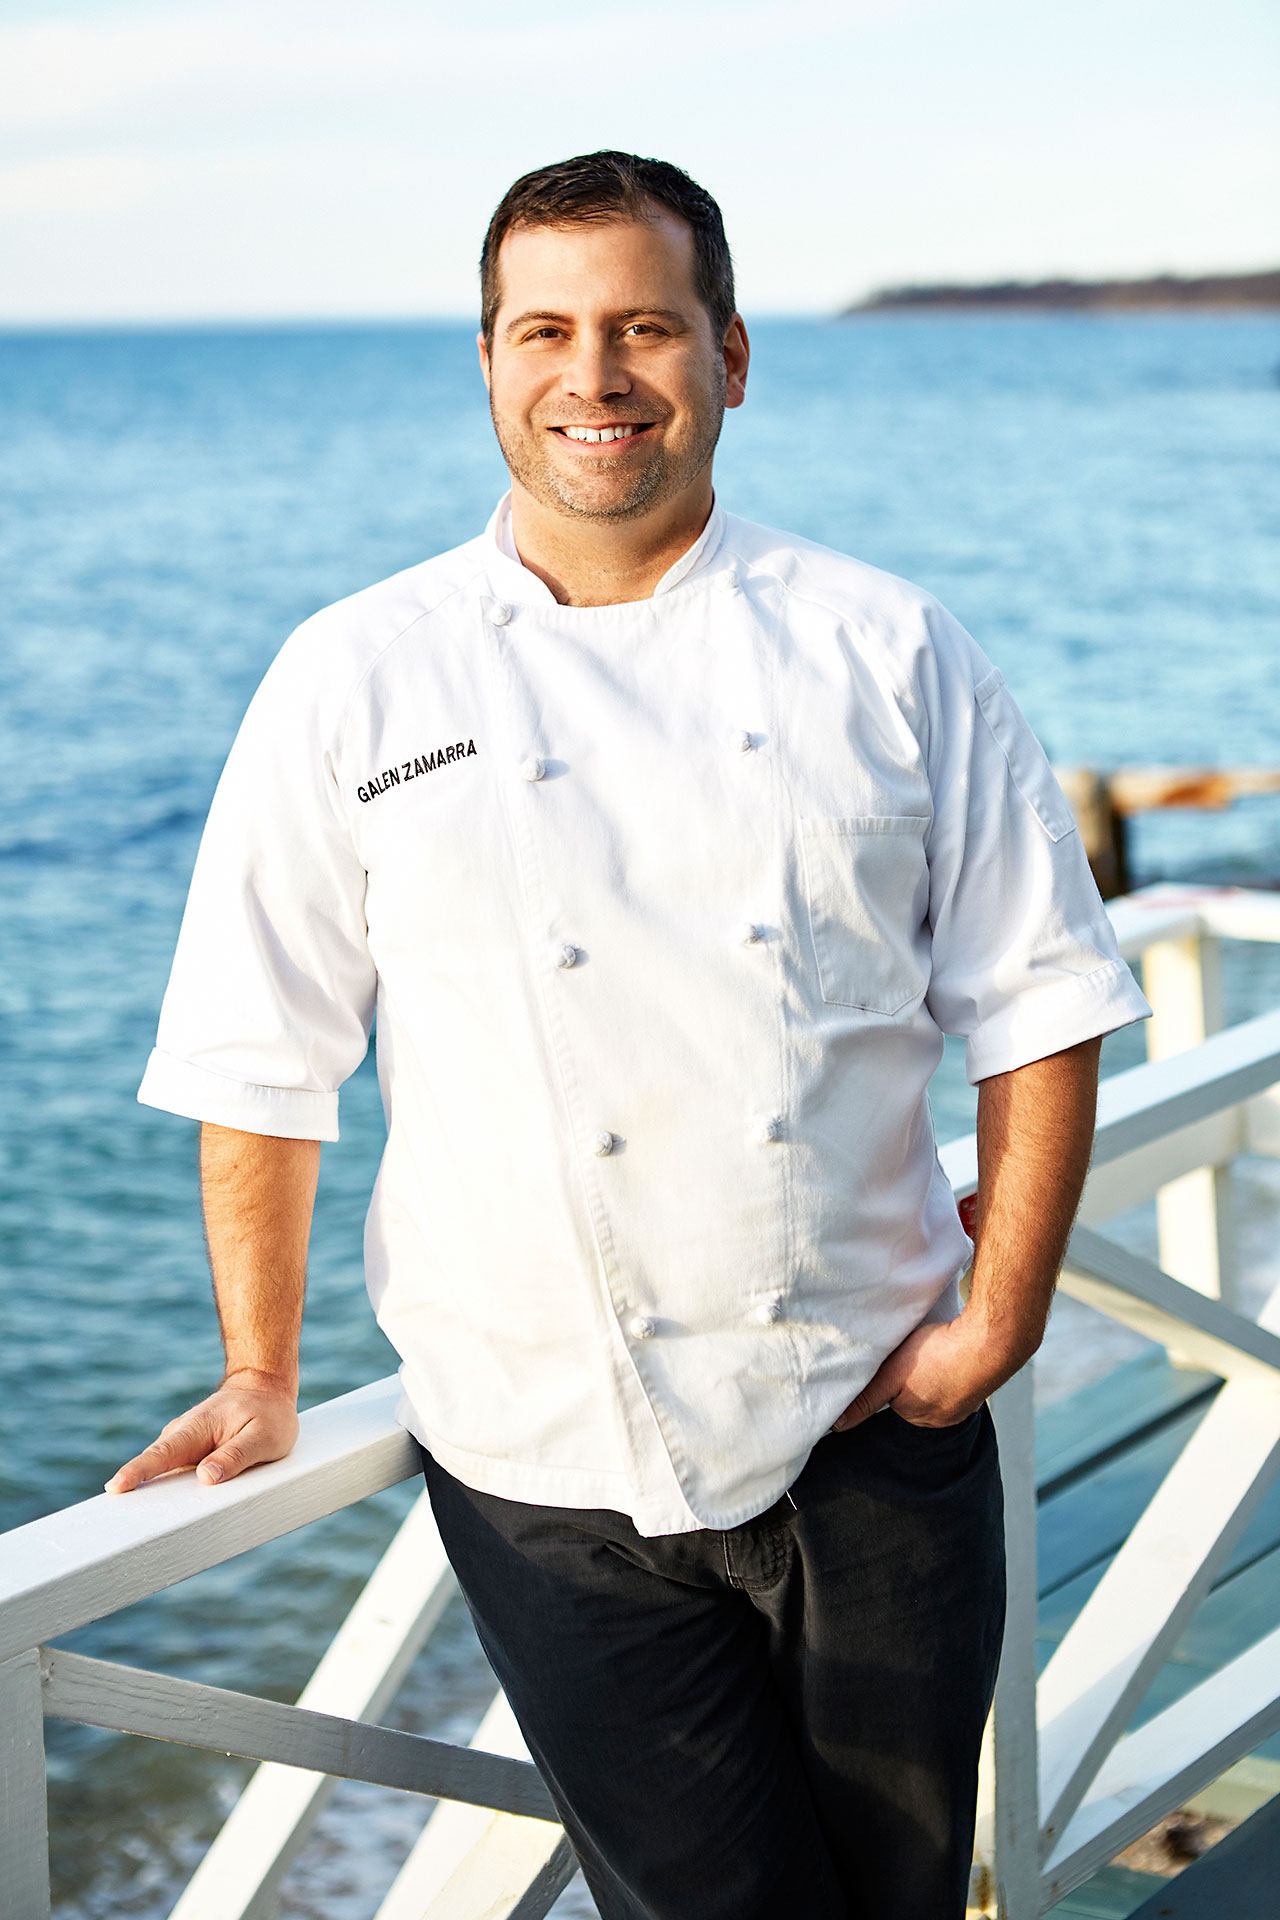 Chef Galen Zamarra. Photo by Paul Brissman.